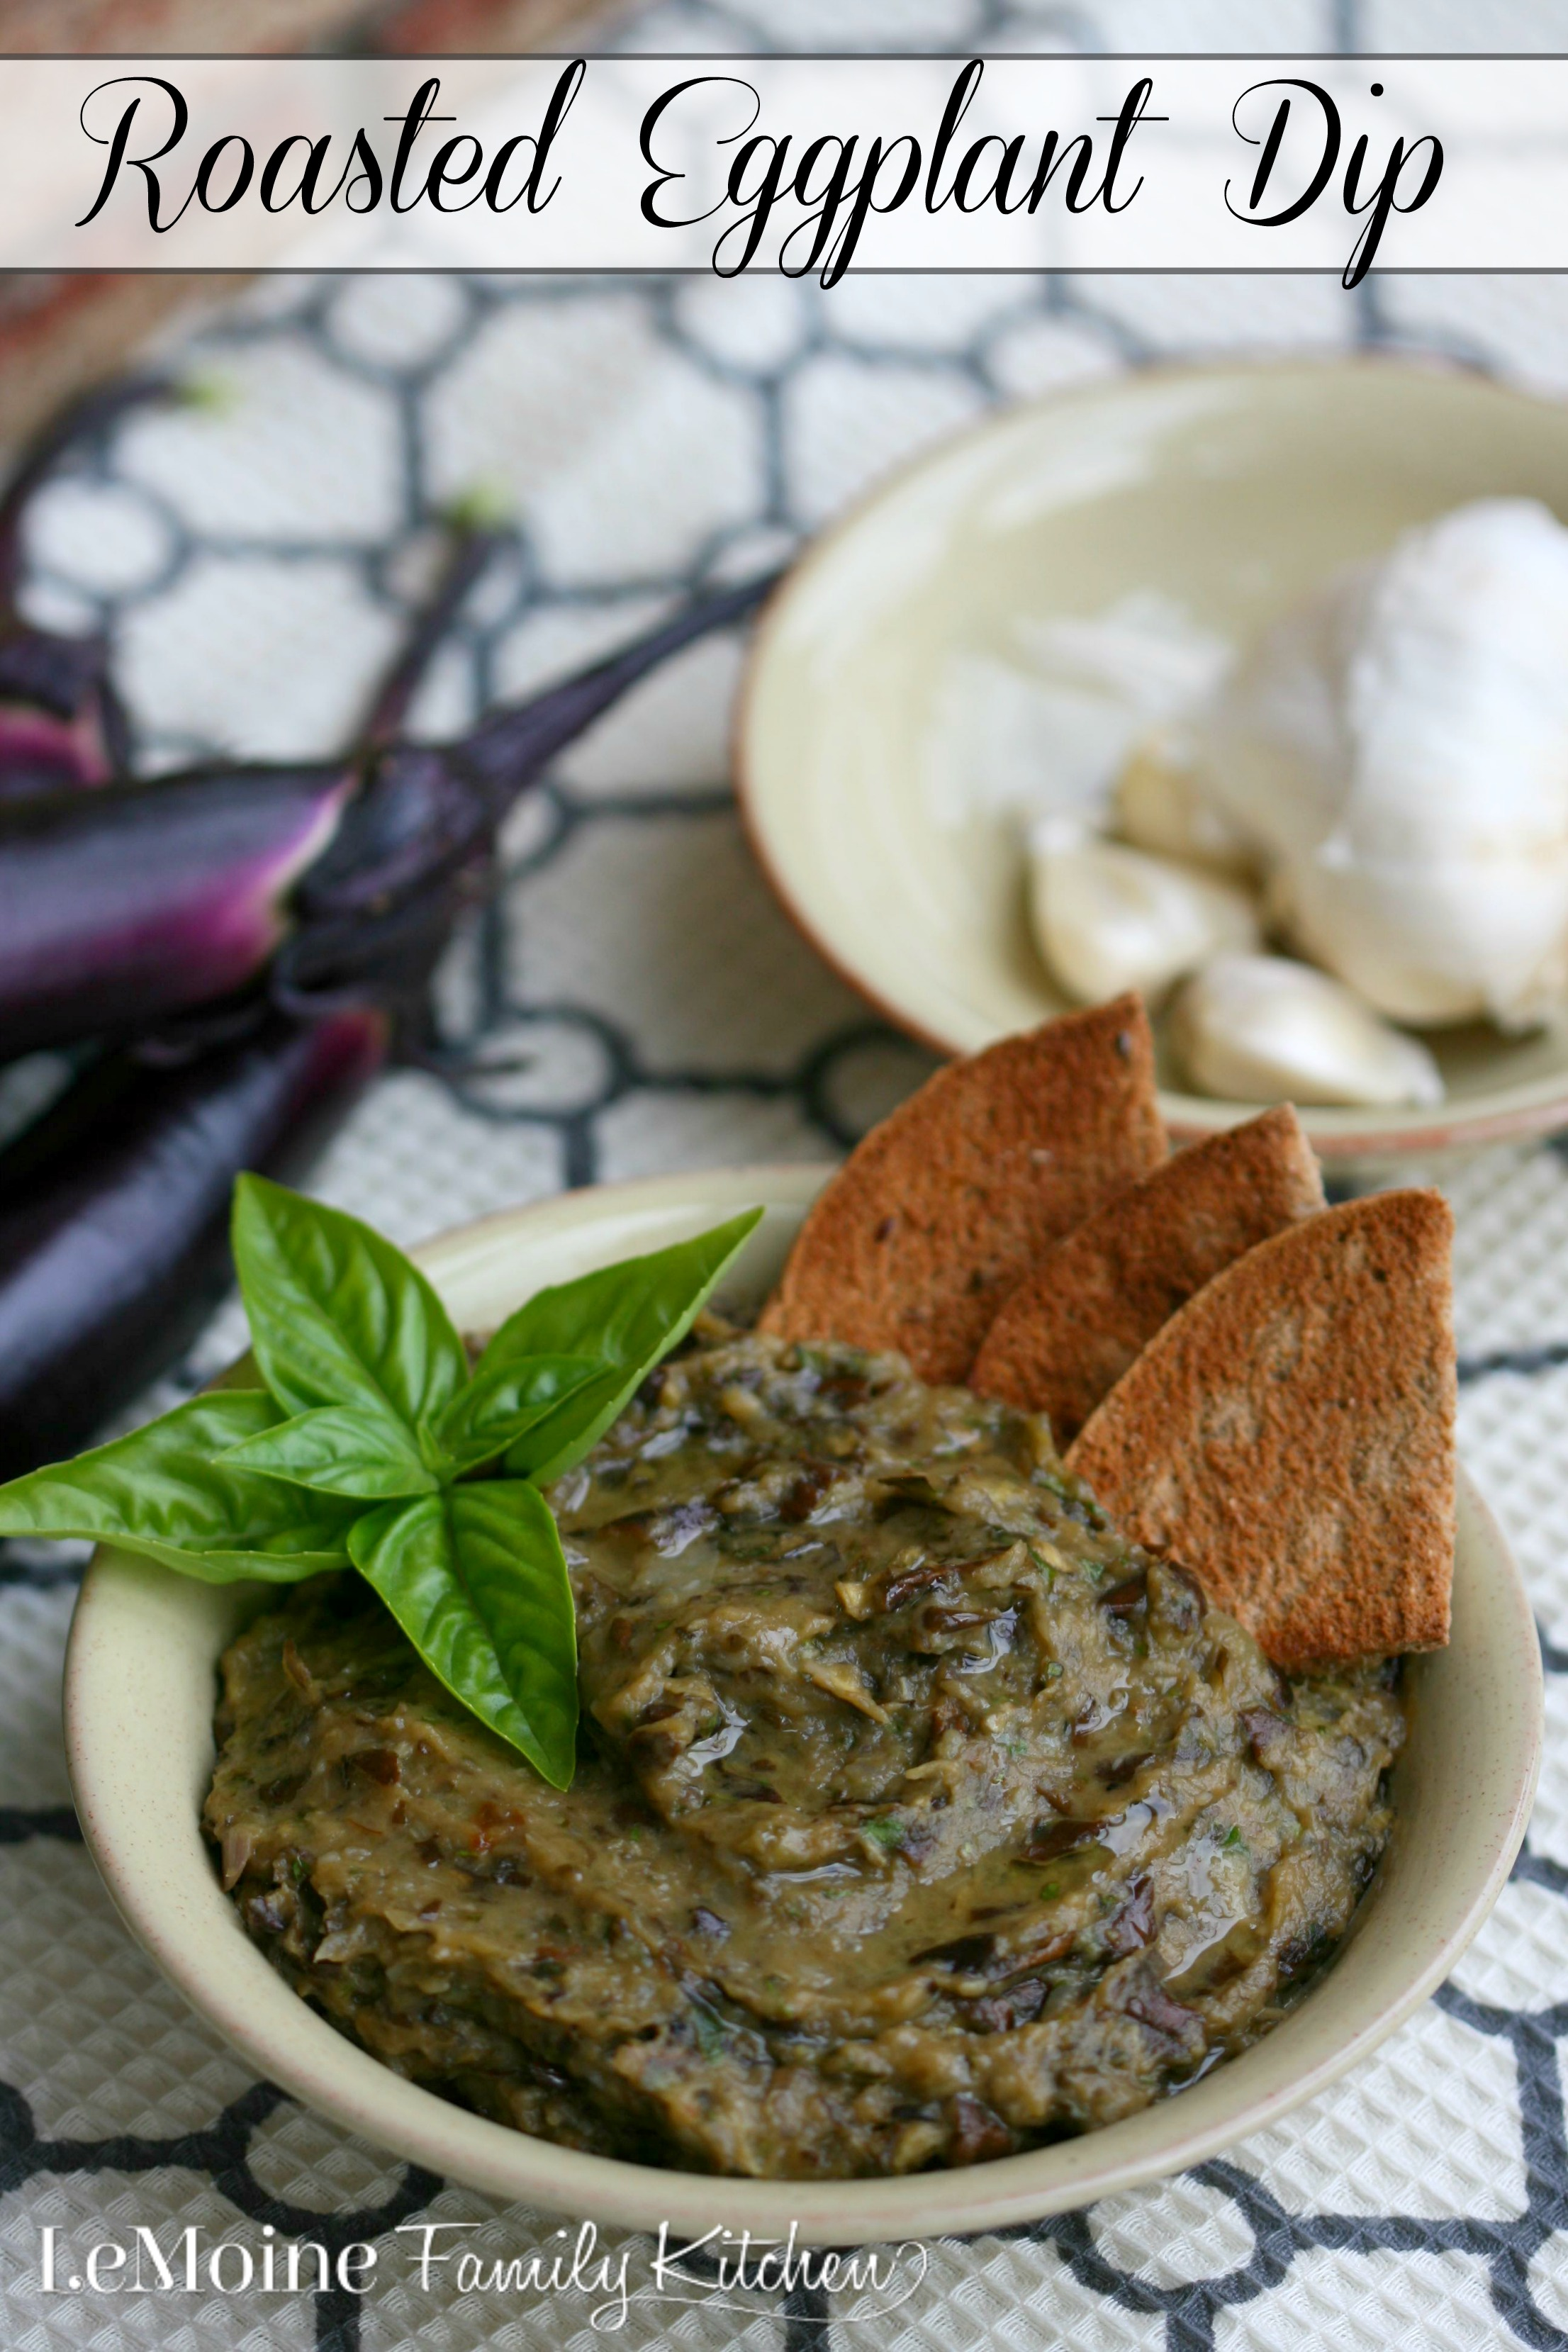 Roasted Eggplant Dip | LeMoine Family Kitchen. Incredibly flavorful with roasted Japanese eggplants, garlic, shallots, lots of basil and some olive oil. Perfect party snack.